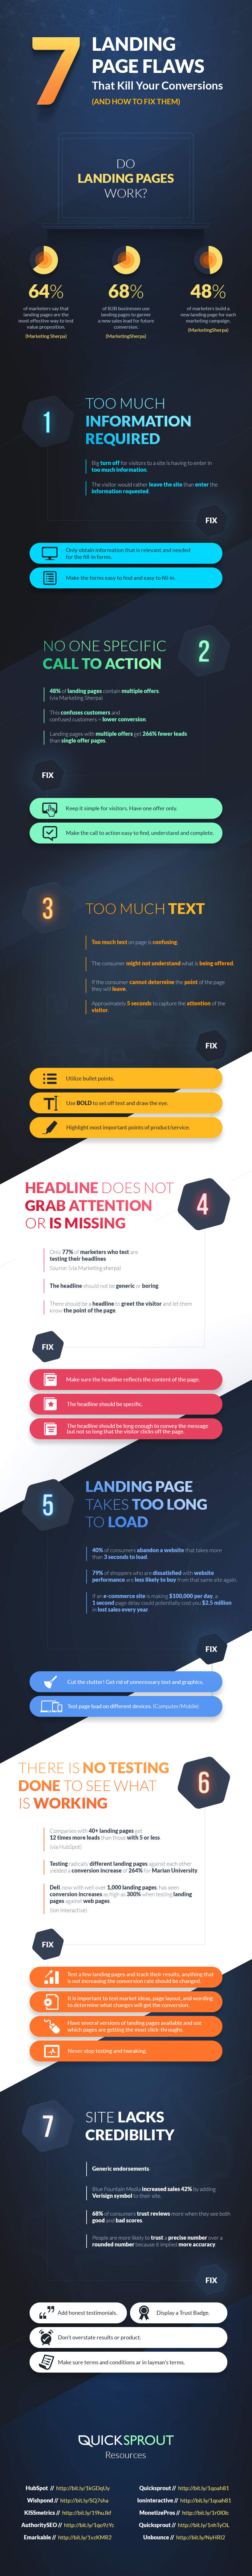 Avoid 7 Landing Page Flaws That Kill Your Conversion Rates